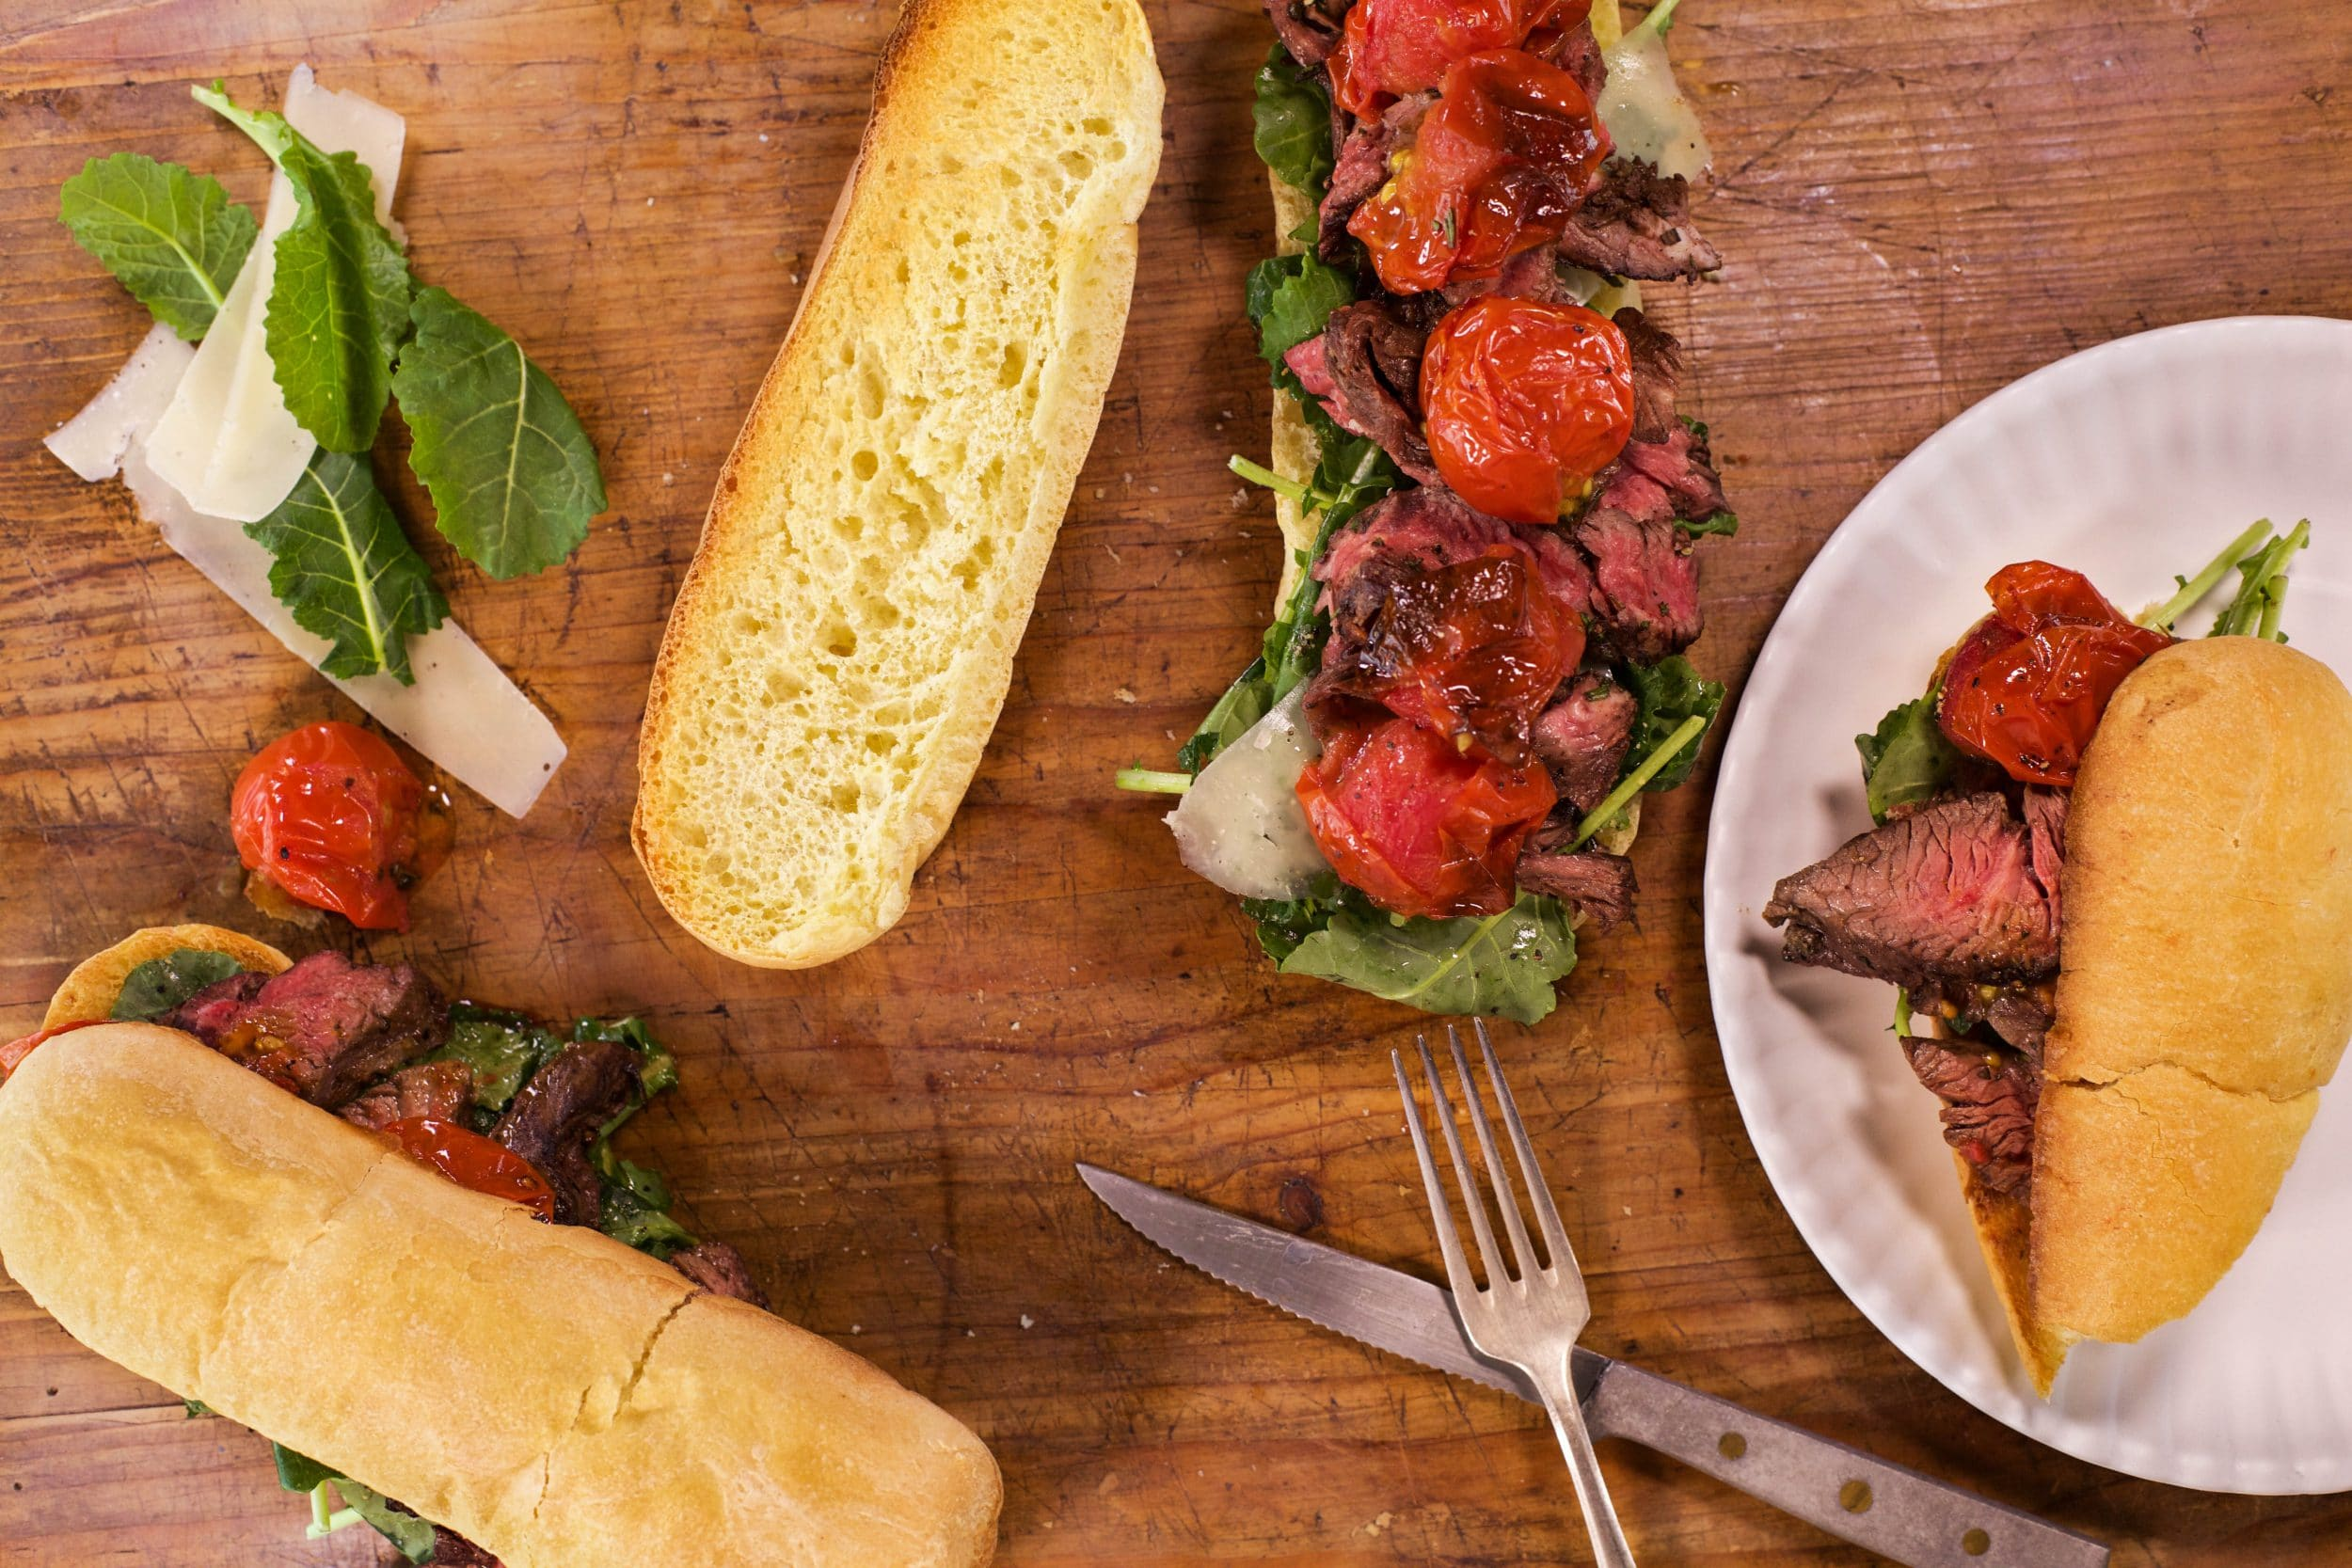 Sliced Steak Sandwiches with Roasted Tomatoes